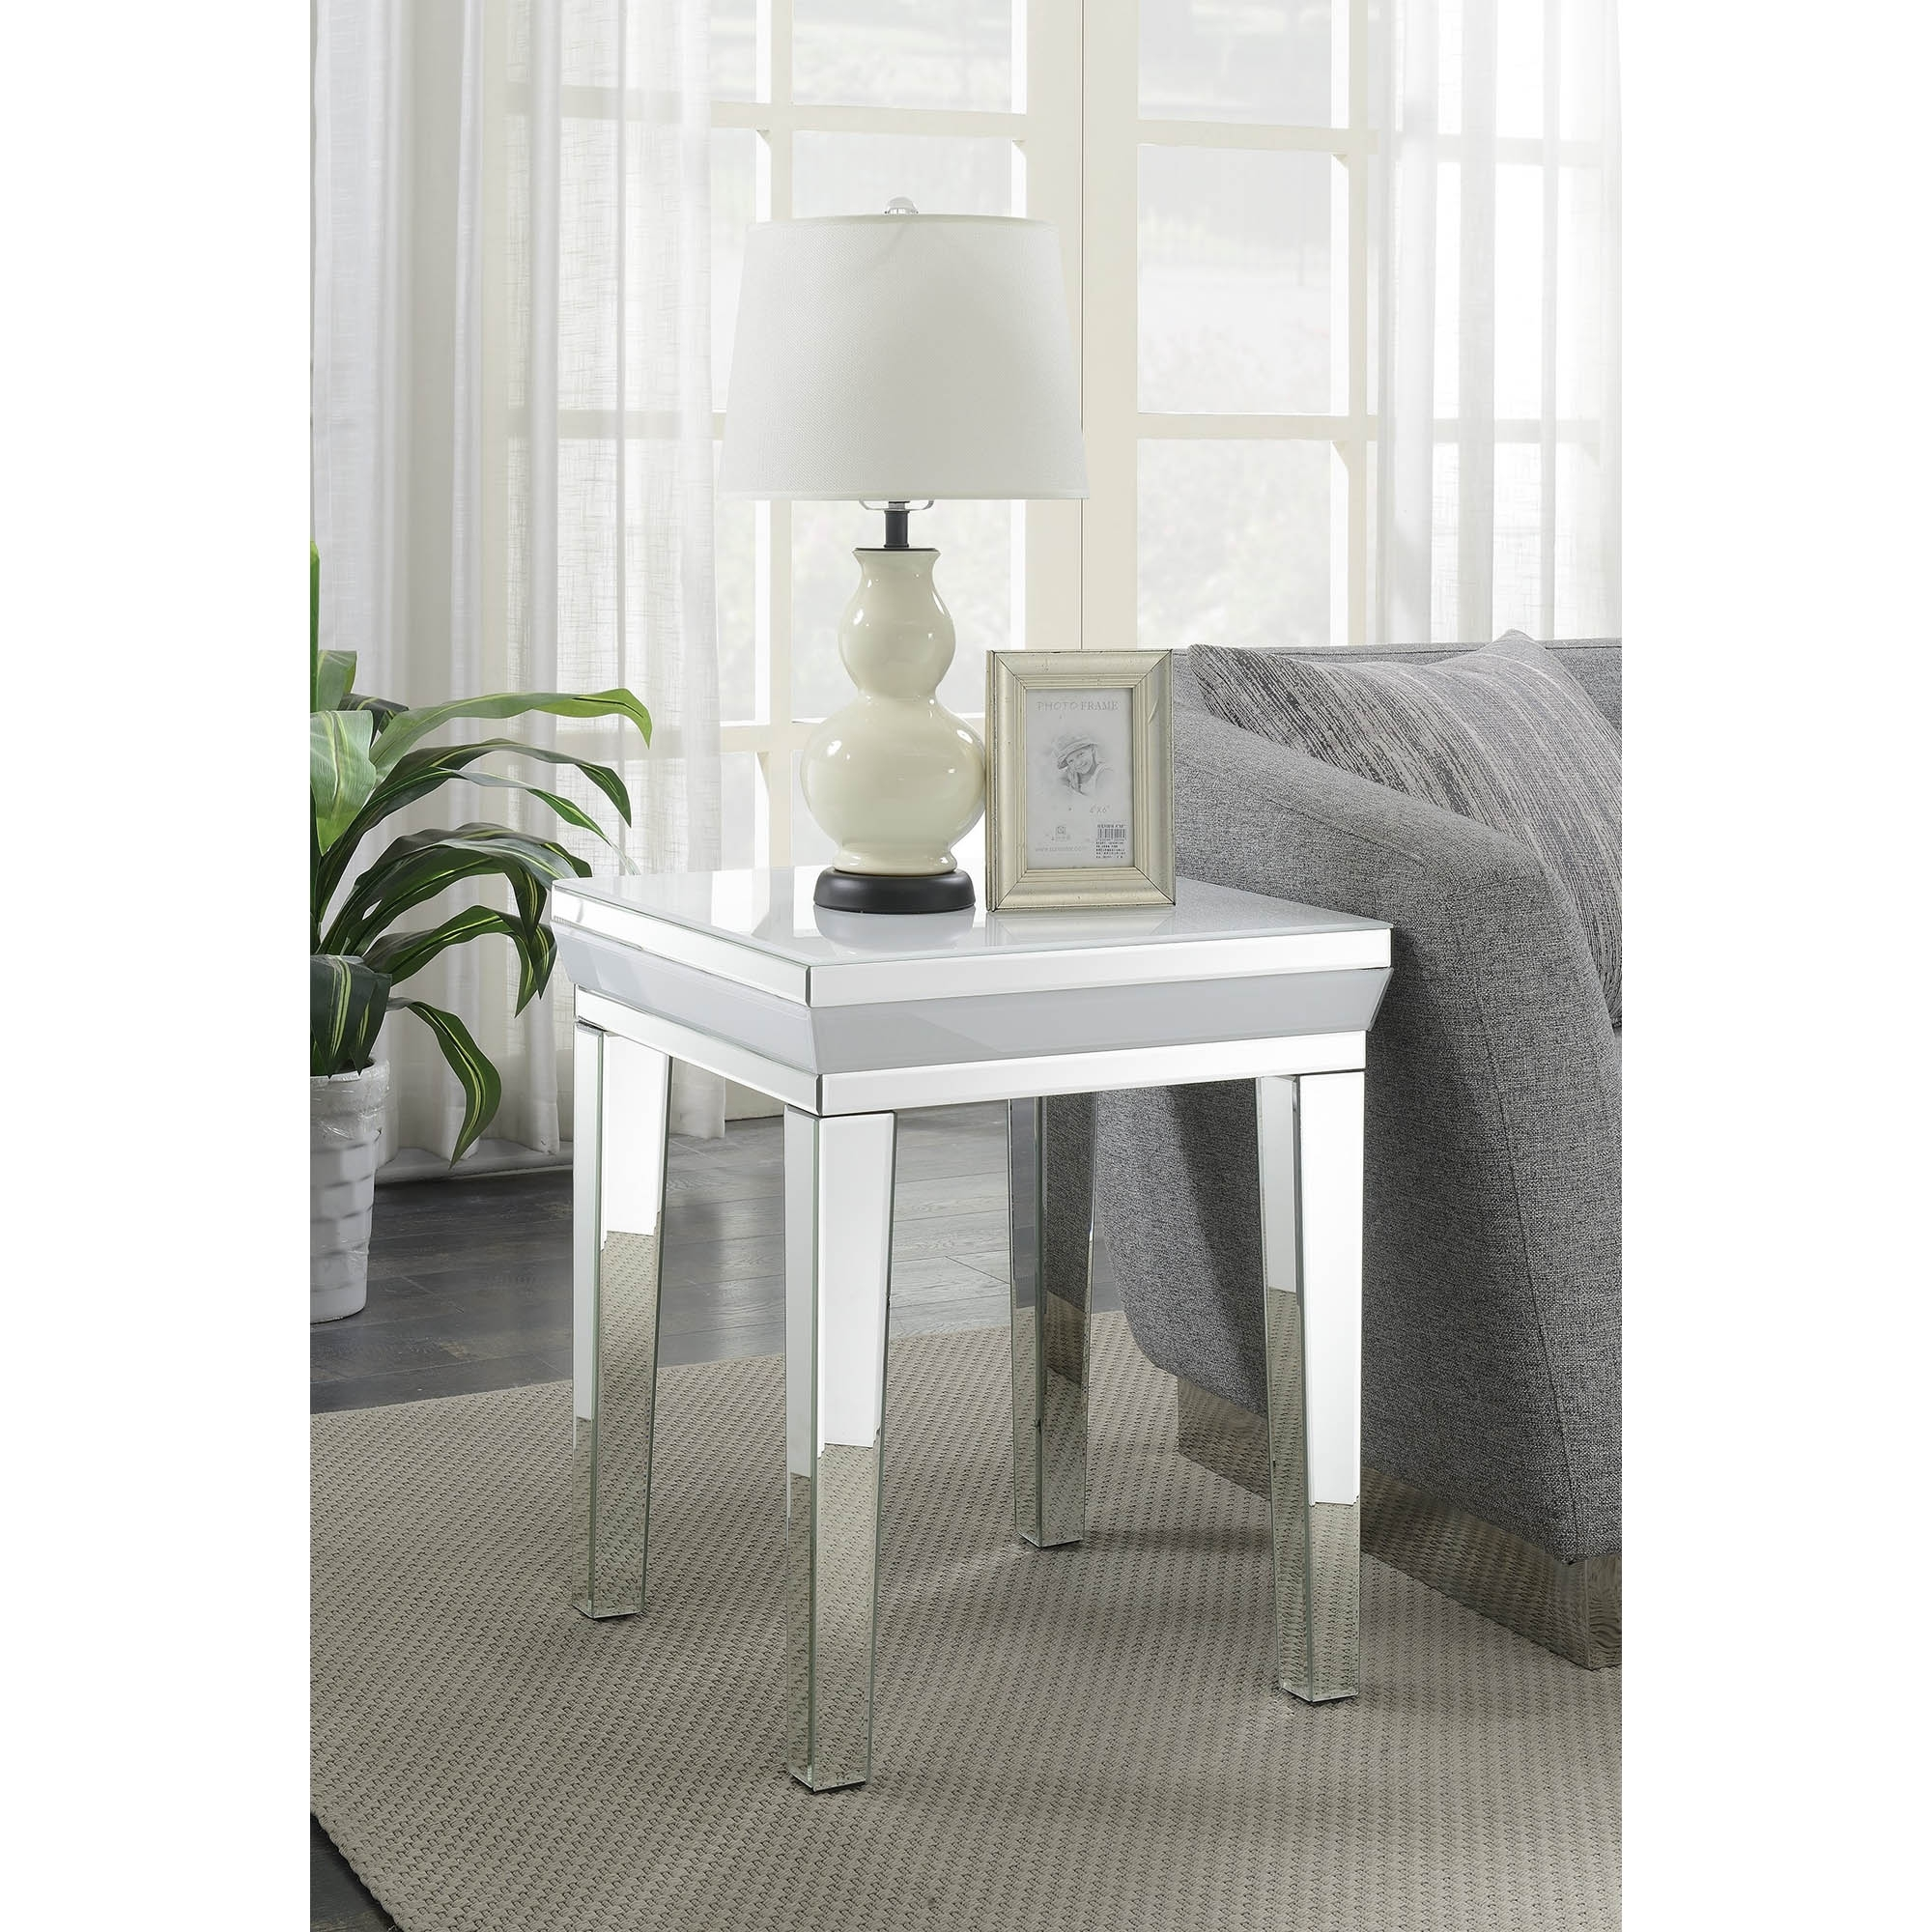 Picture of: Malibu Mirrored Side Table Side Table Homesdirect365